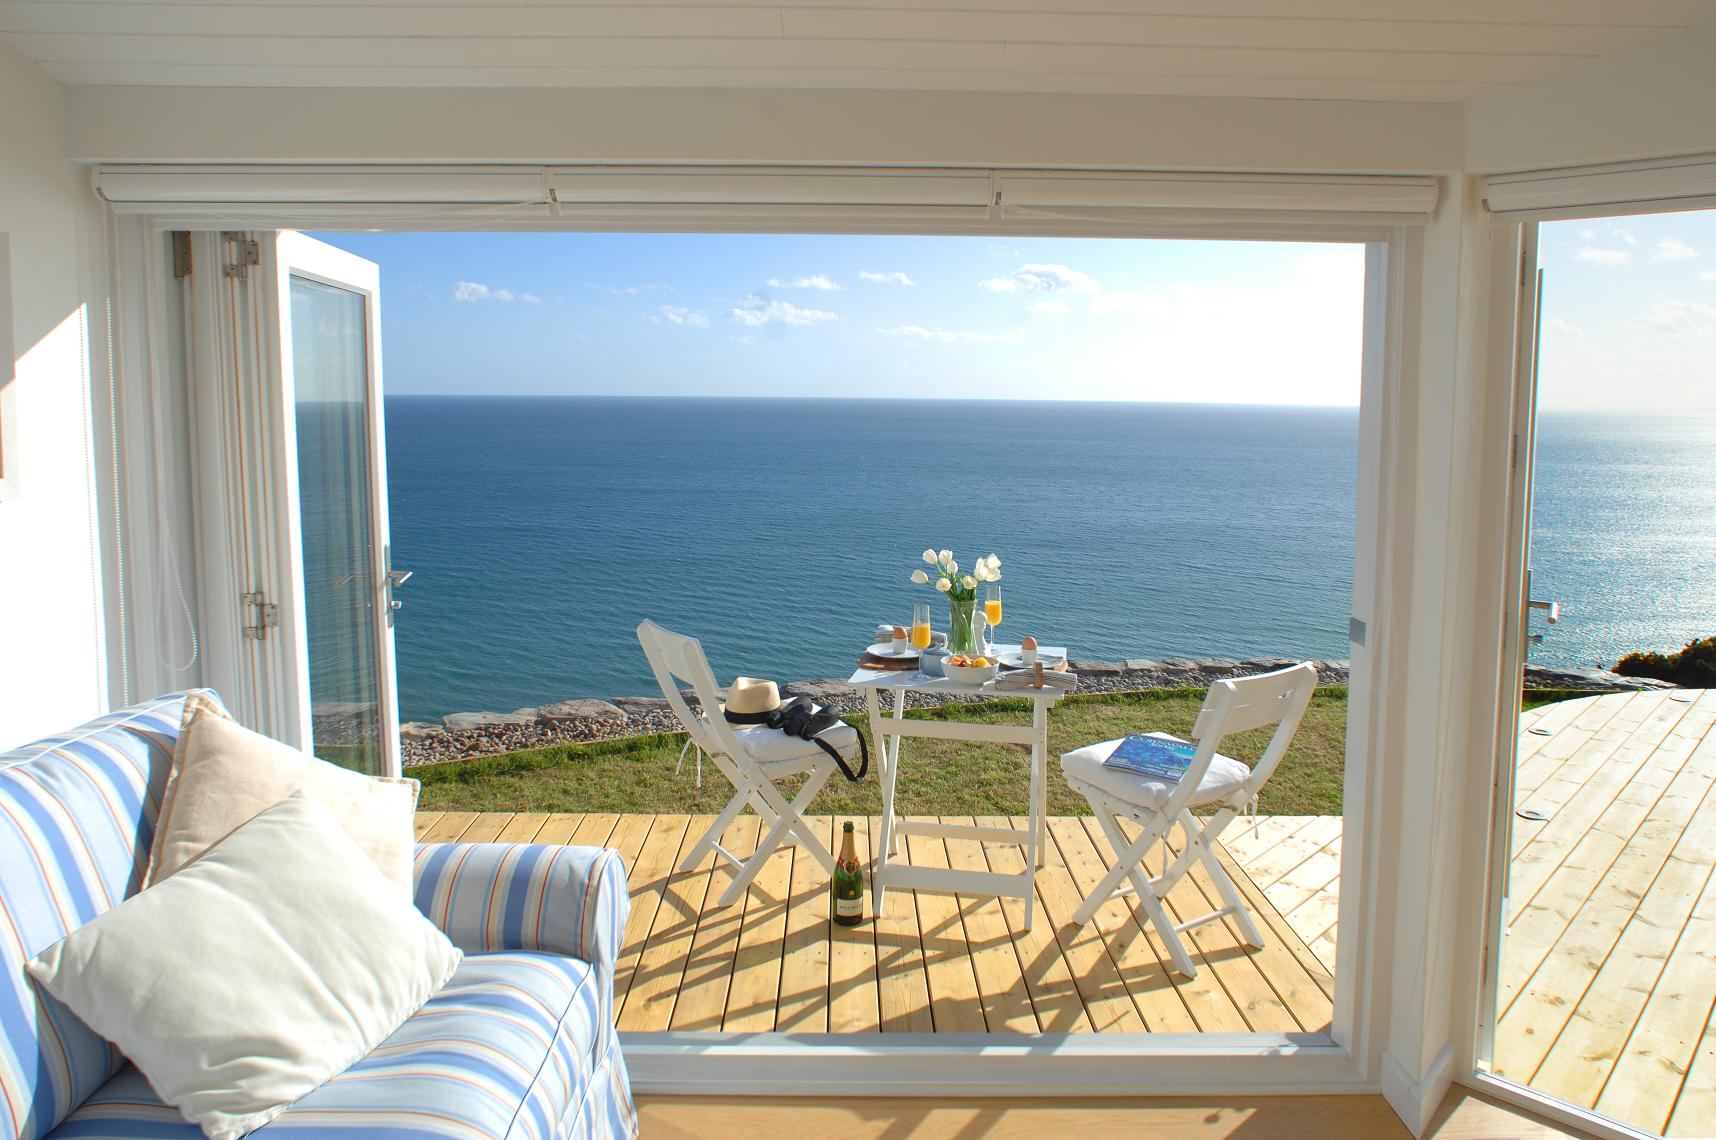 Gallery the edge an idyllic beach cottage in cornwall for Beach cottage interior designs